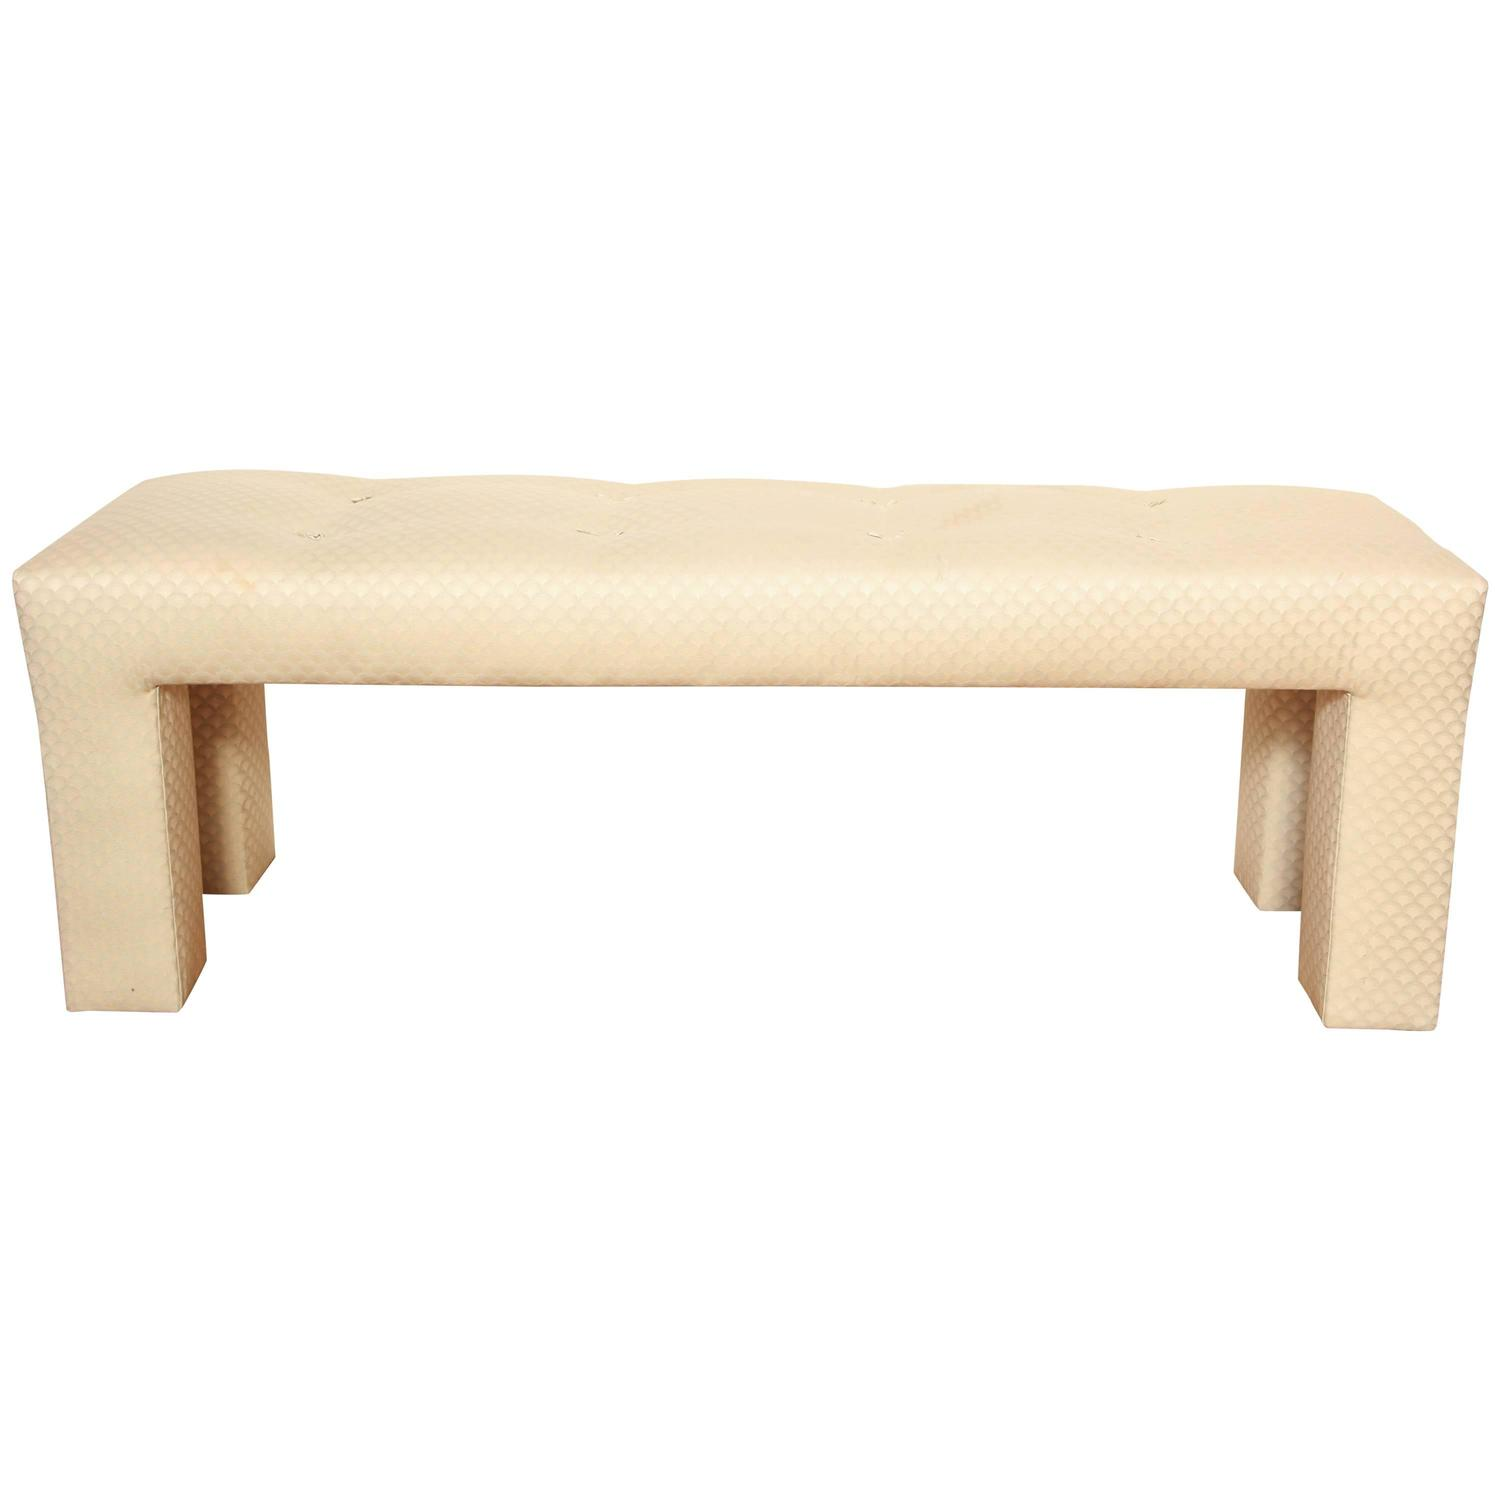 Contemporary Design Custom Bench By Deangelis At 1stdibs